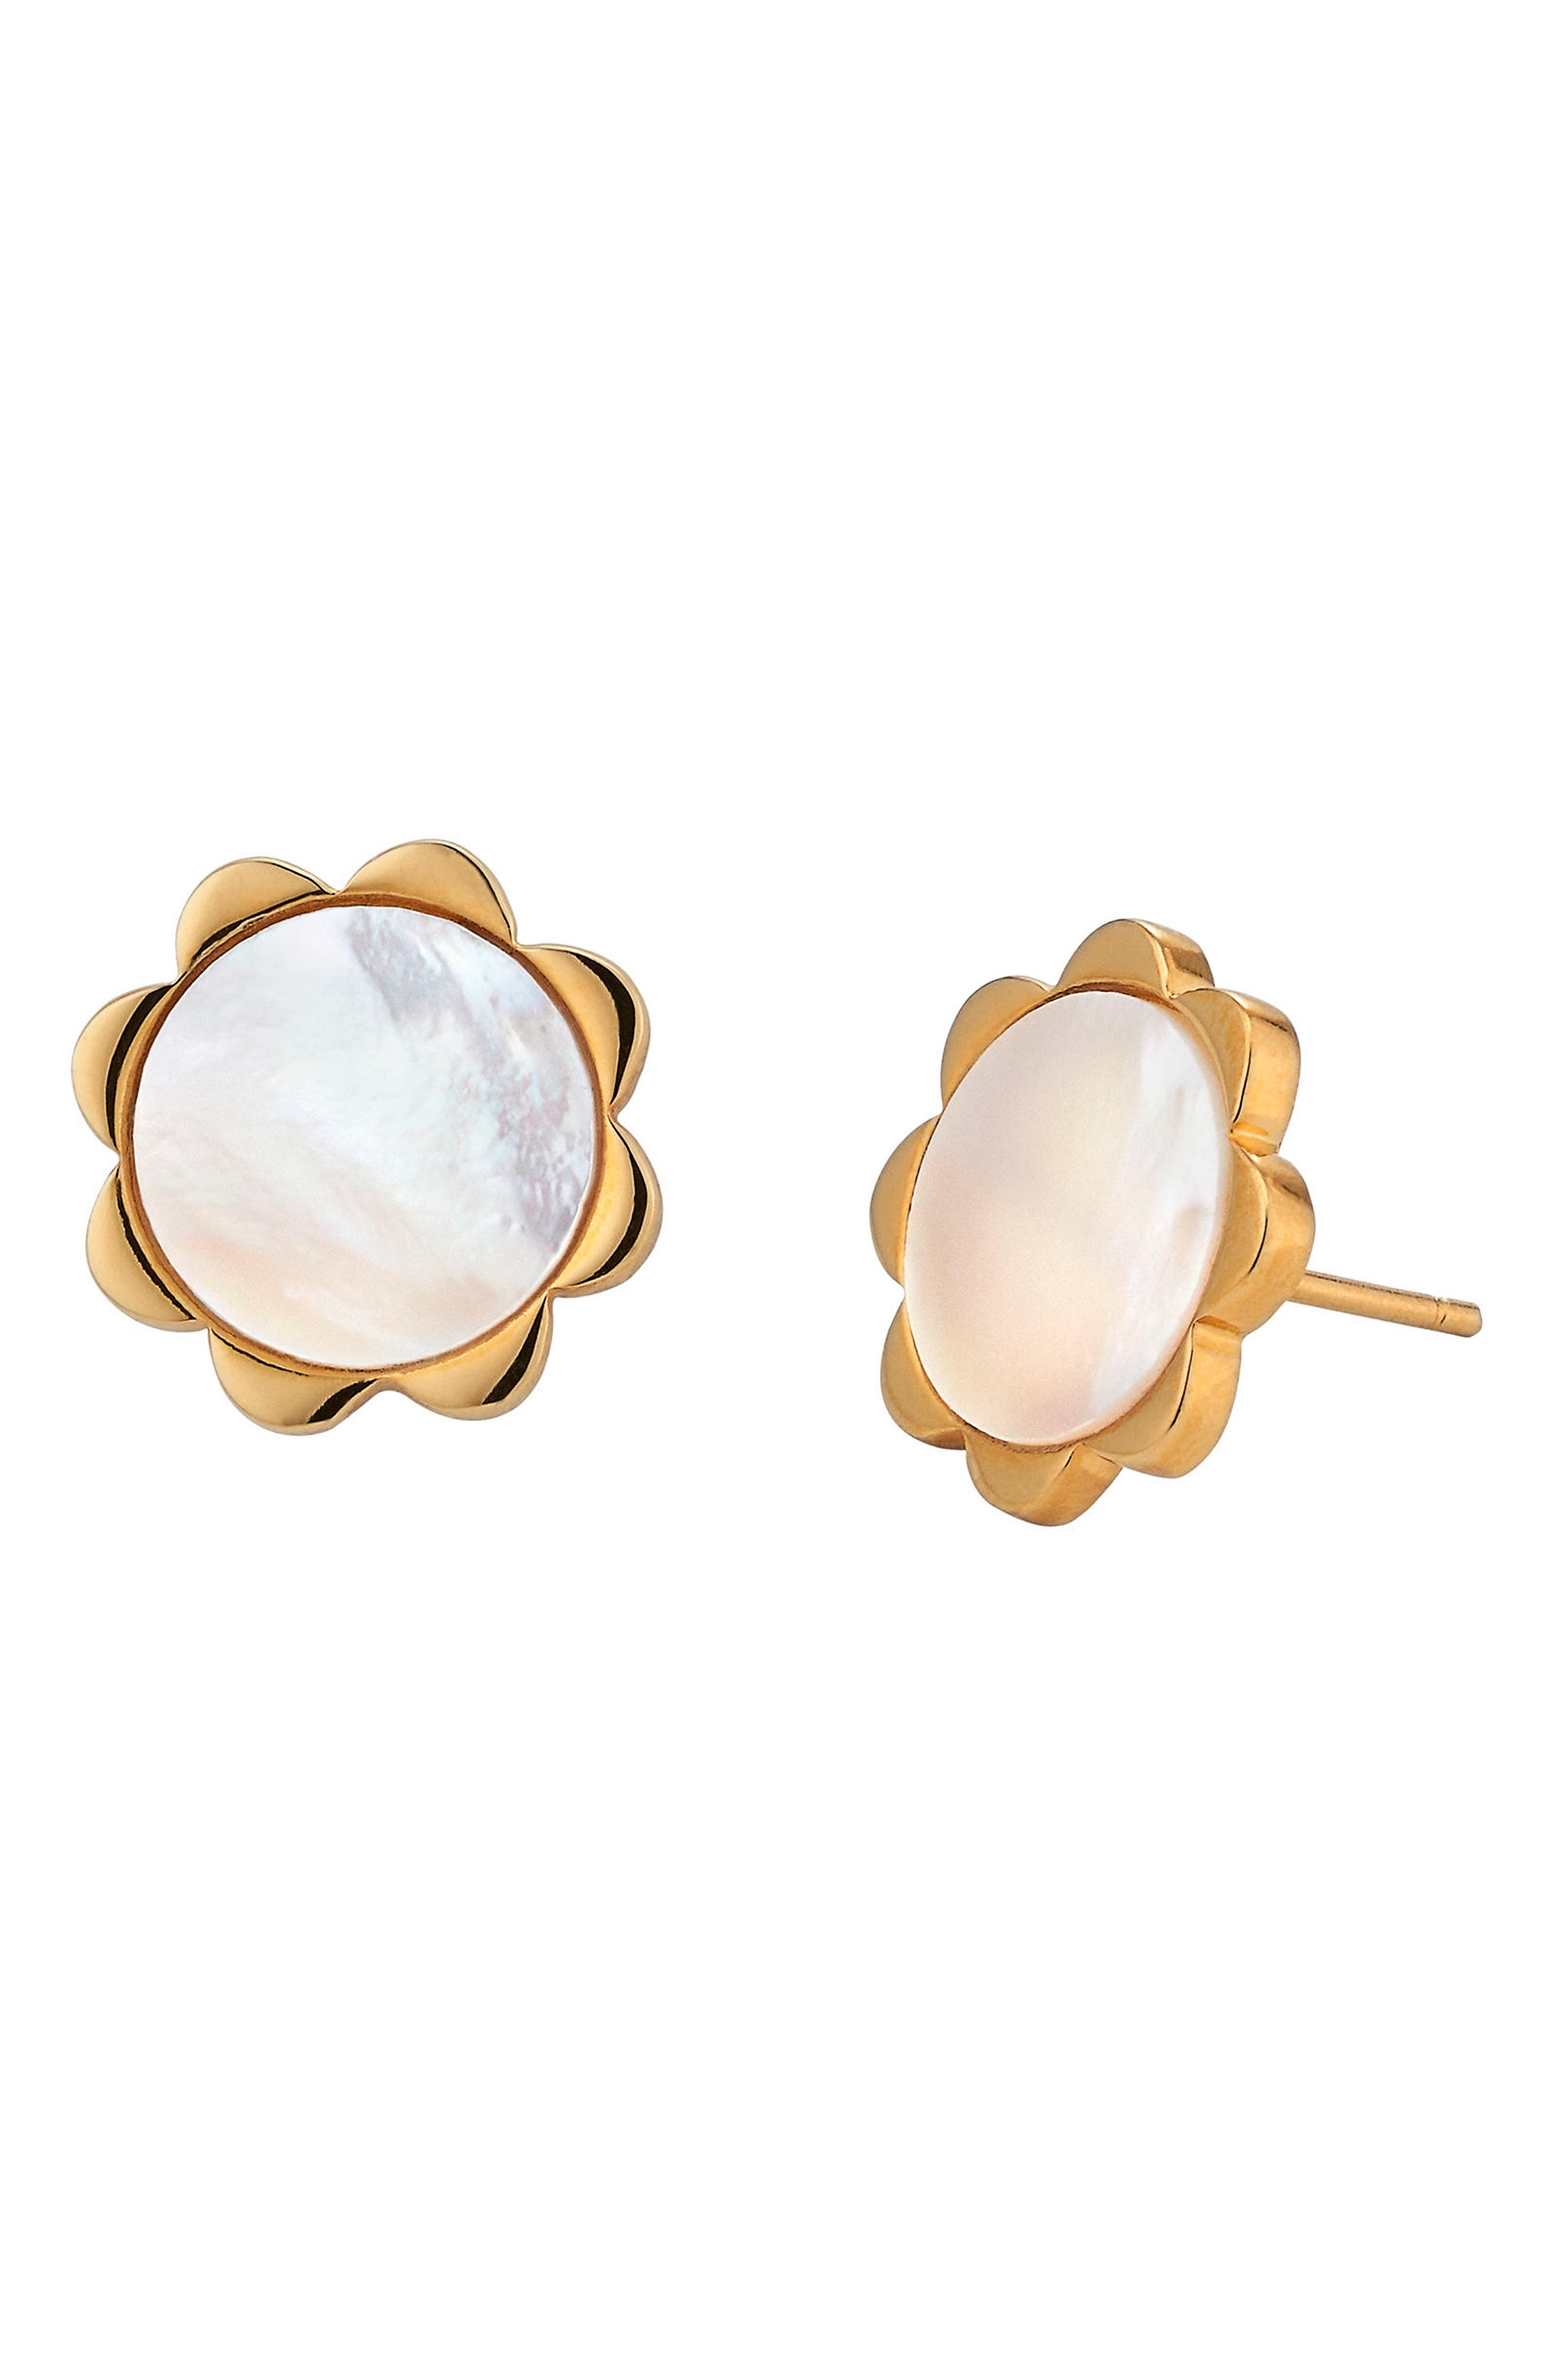 Flower Mother-of-Pearl Stud Earrings,                         Main,                         color, Gold - Mother Of Pearl